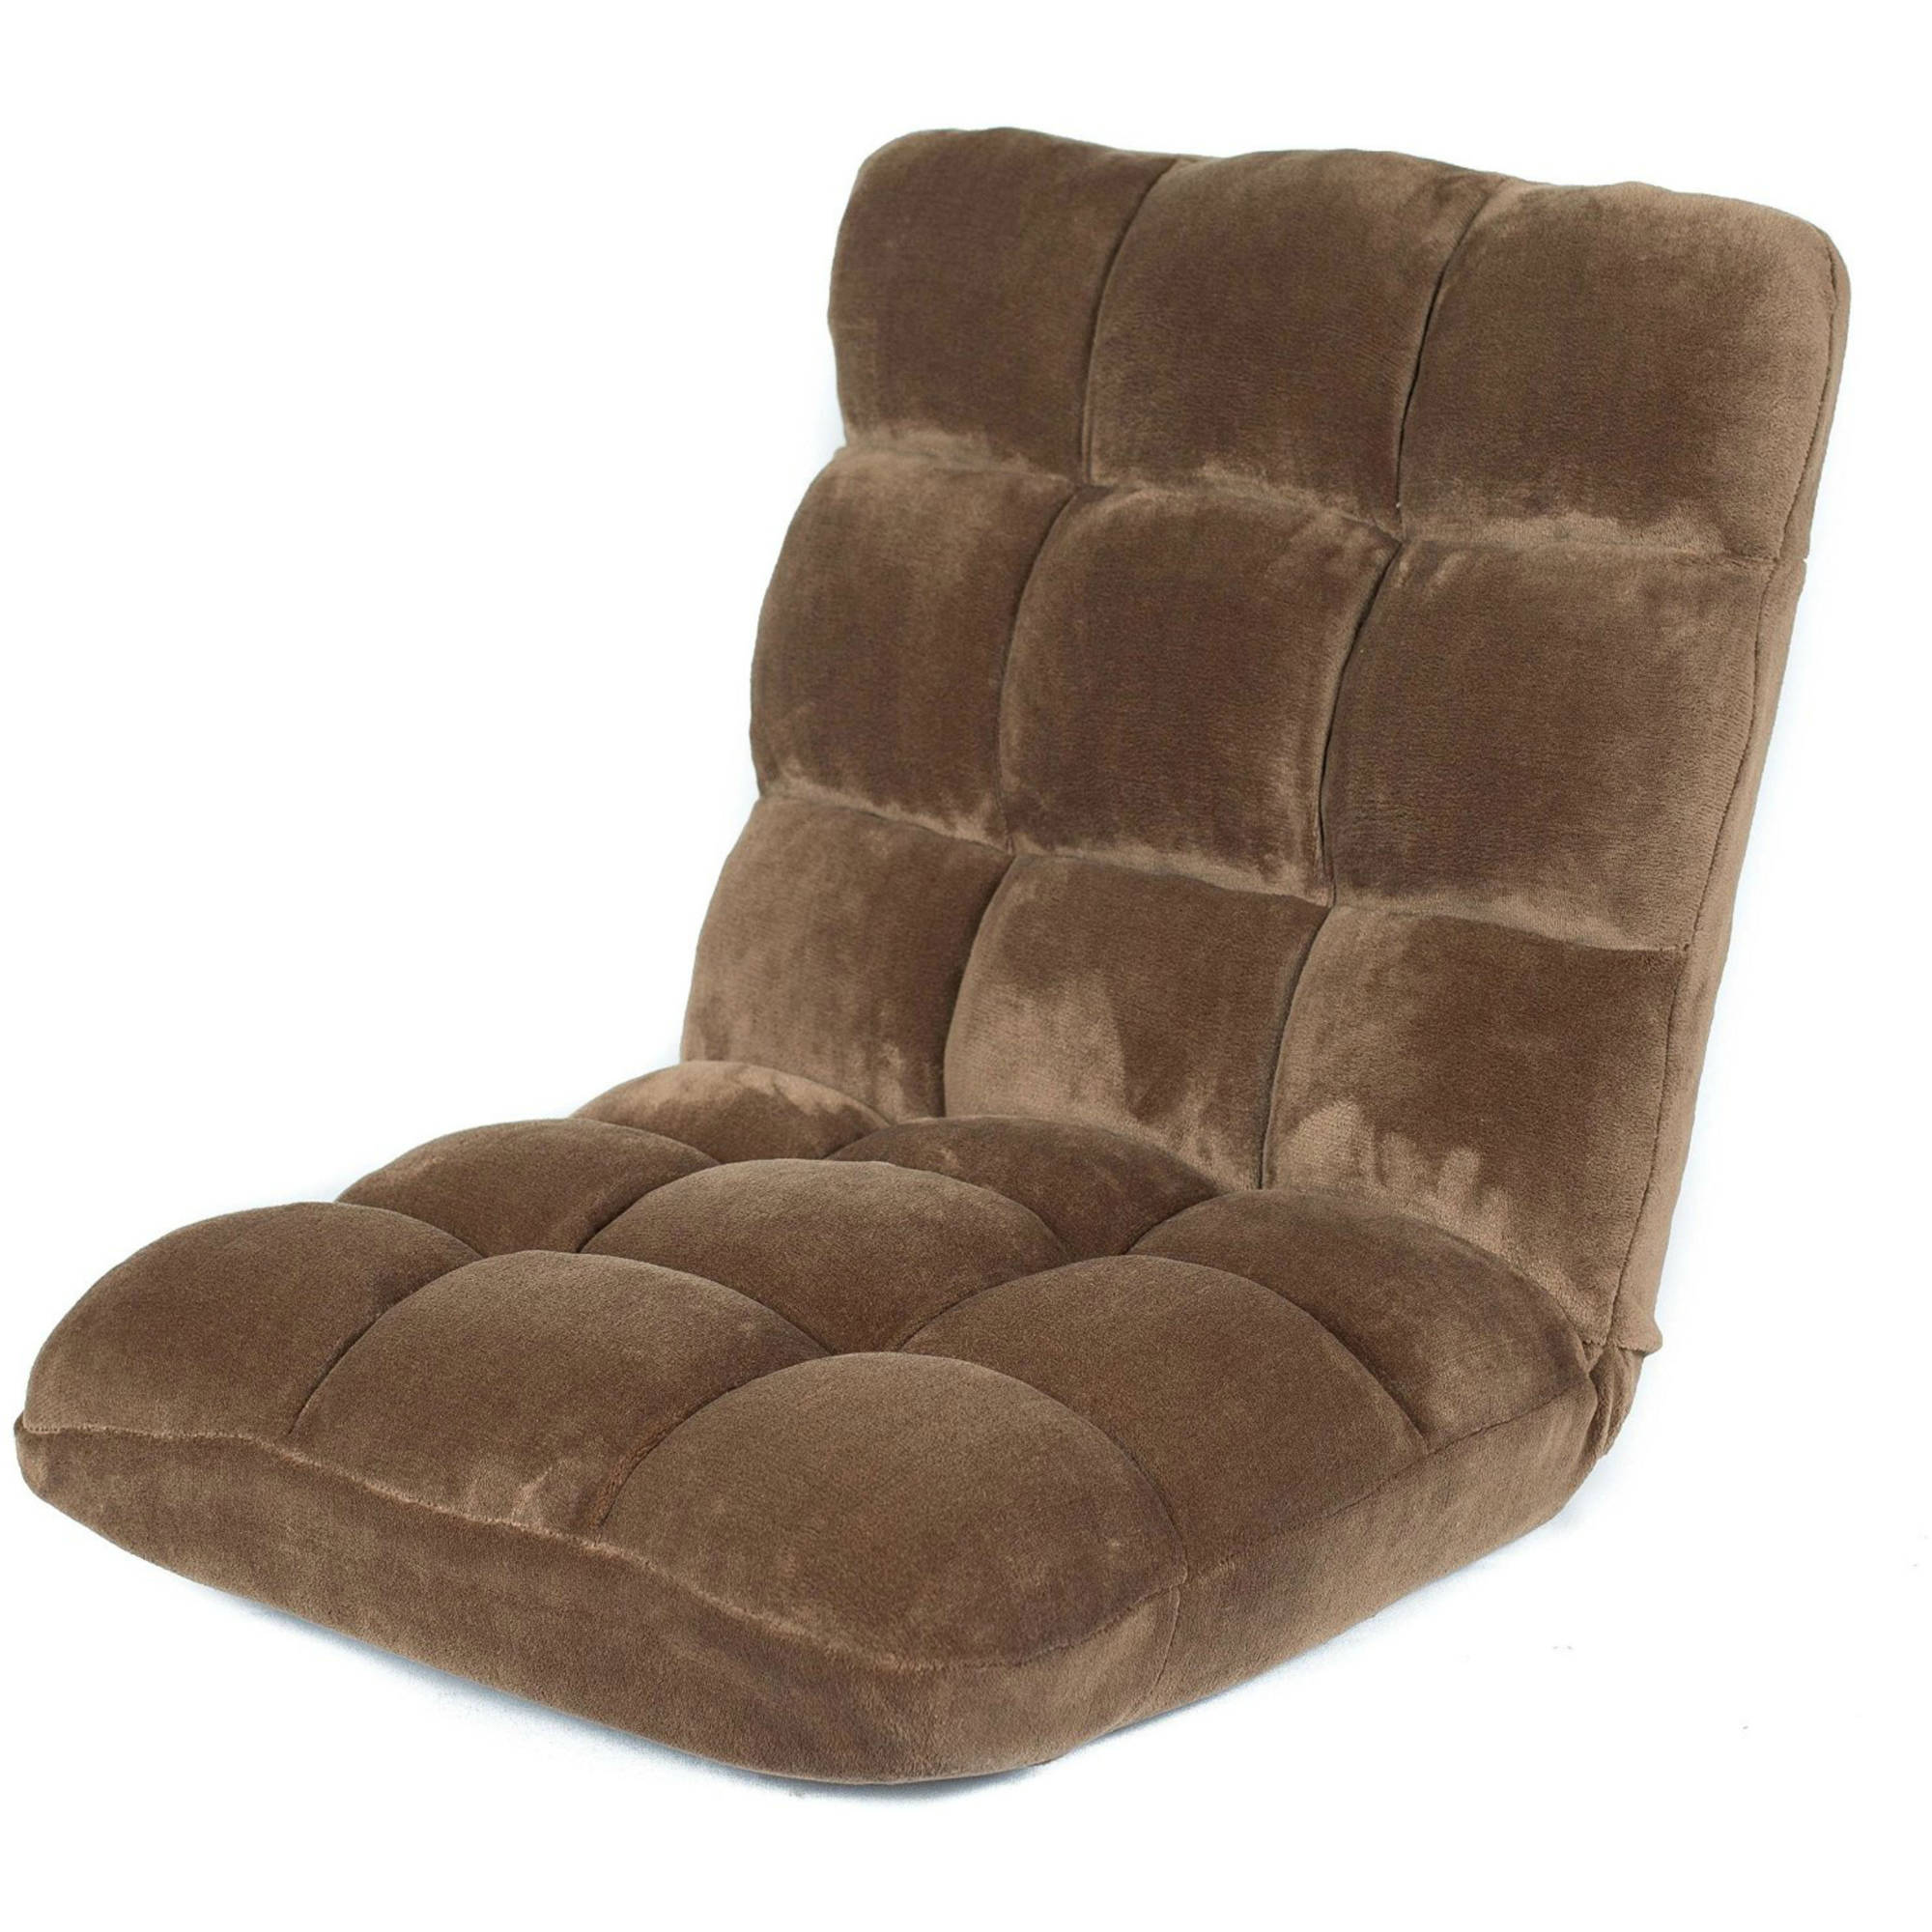 the floors i and like fluffy images pinterest cushions instead futon for how a chair best or create couches couch hypergazelle of this office could floor something on